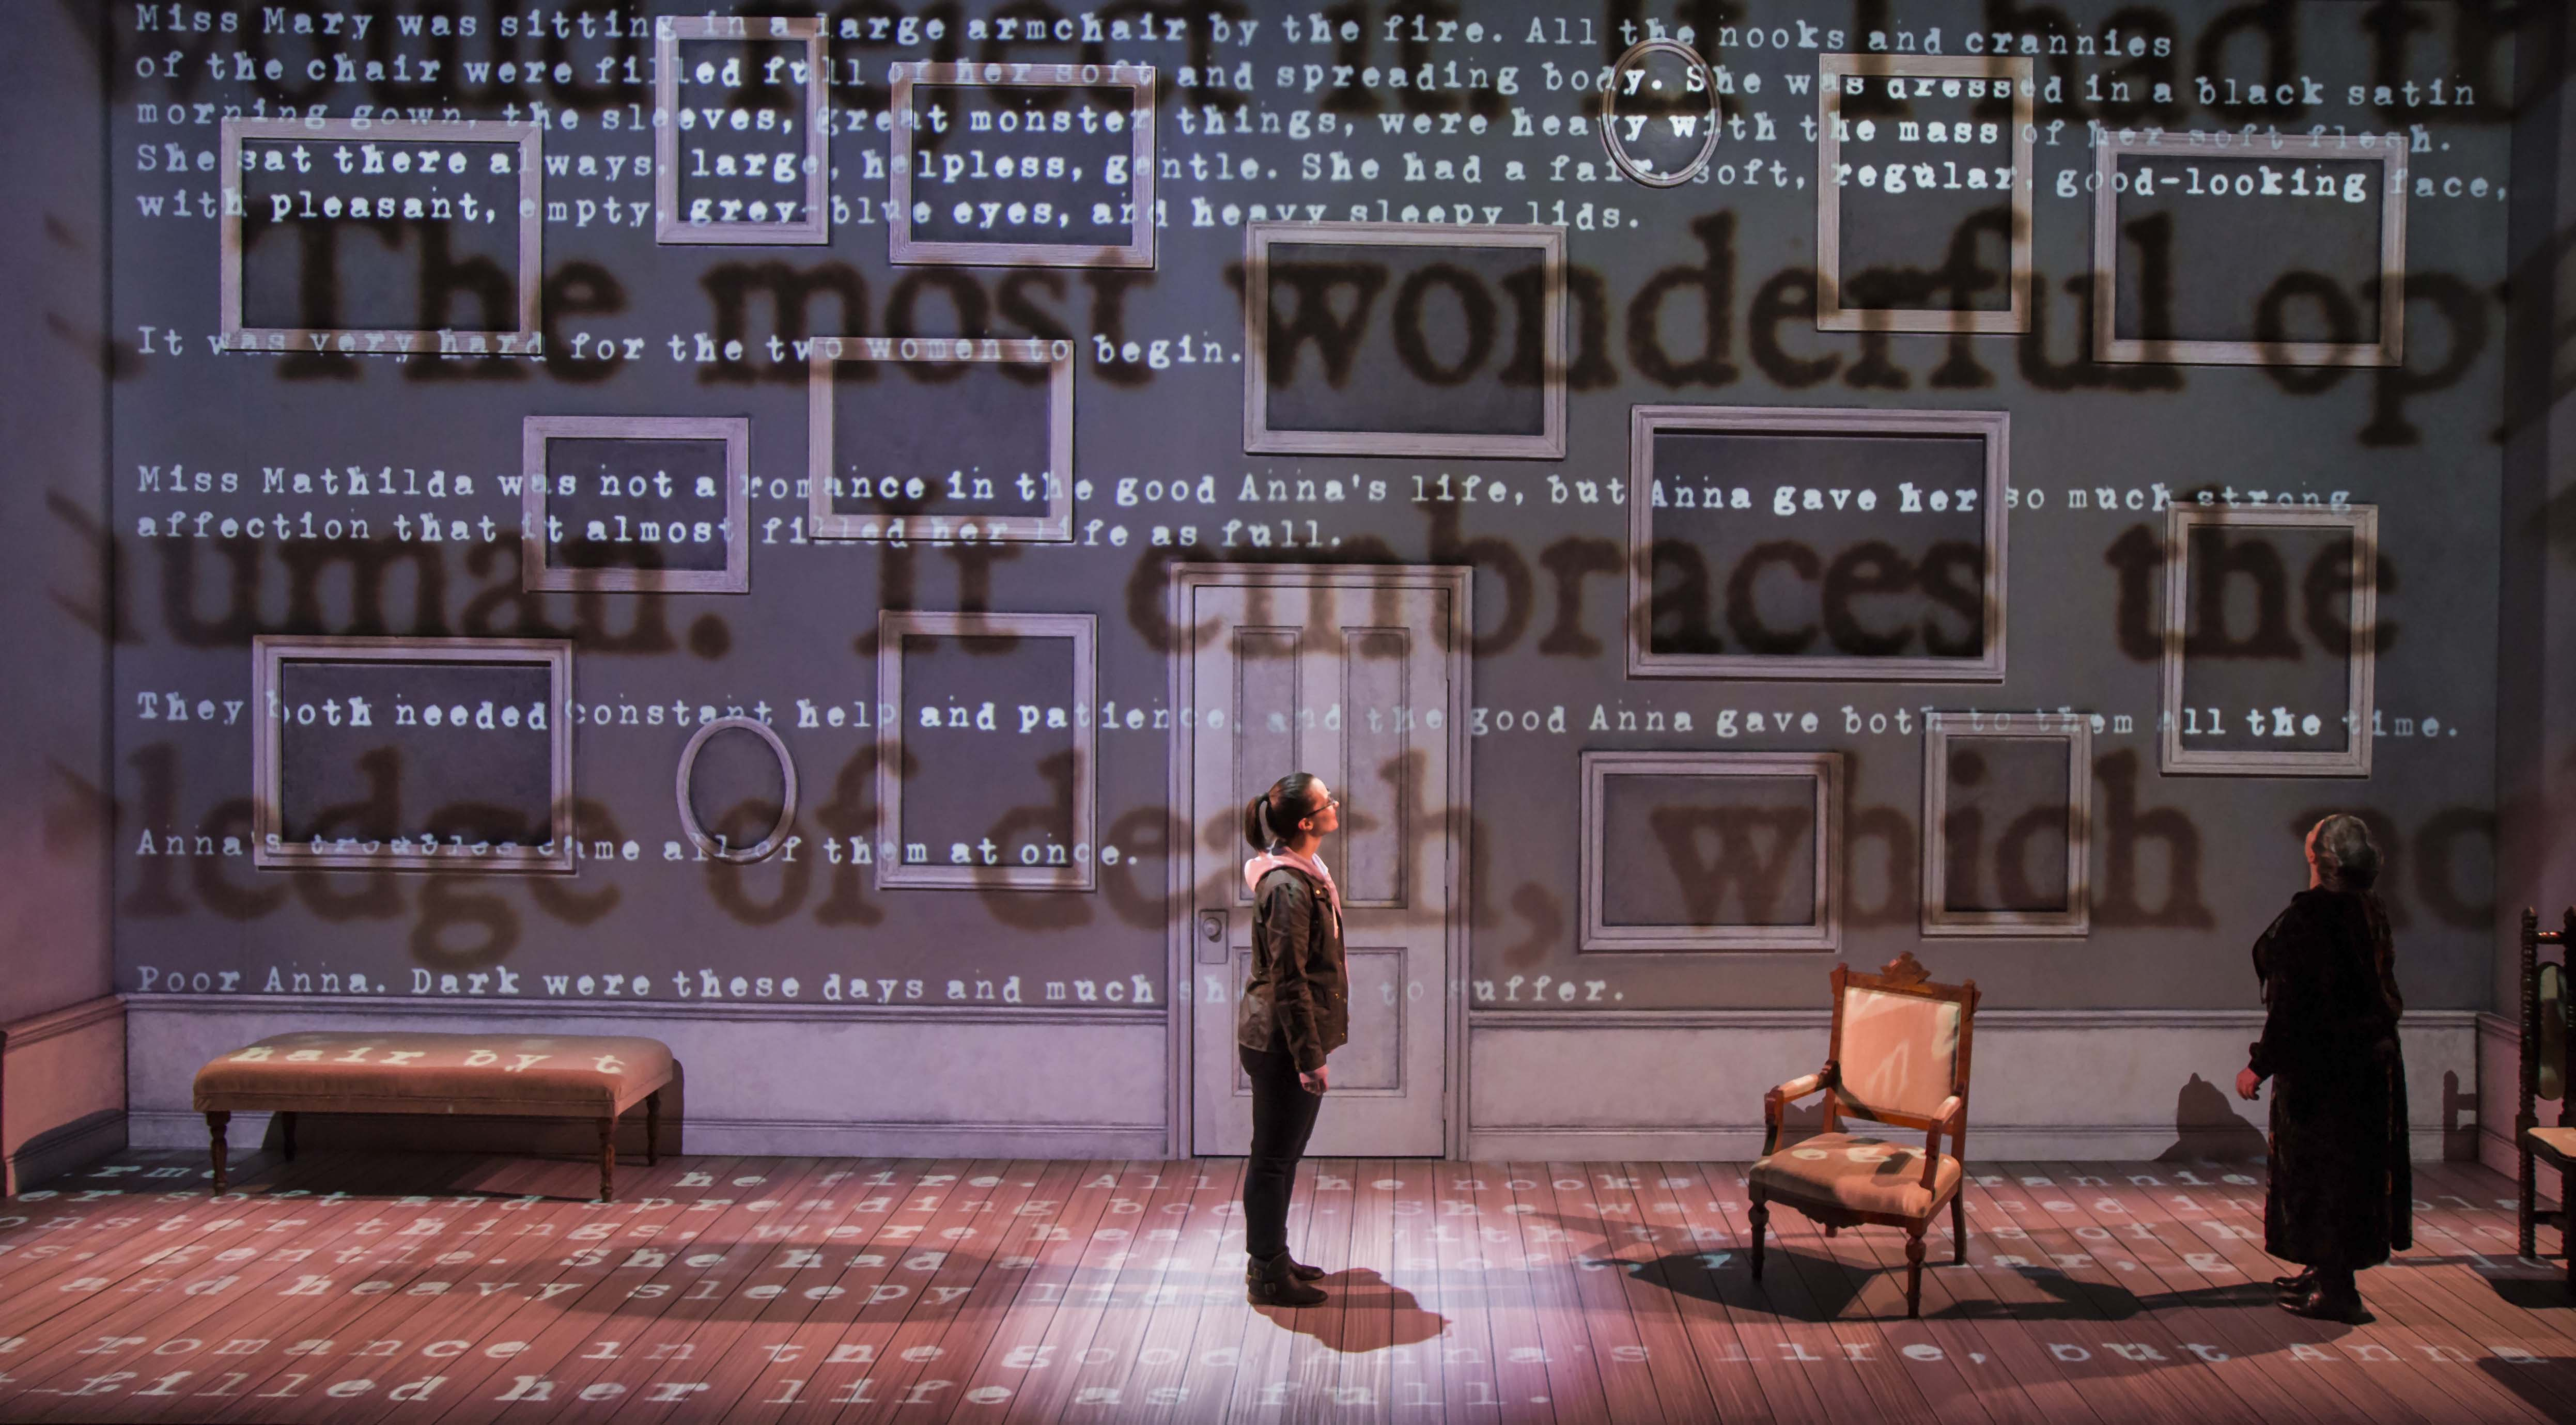 Woman stand center stage words projected on wall and floor